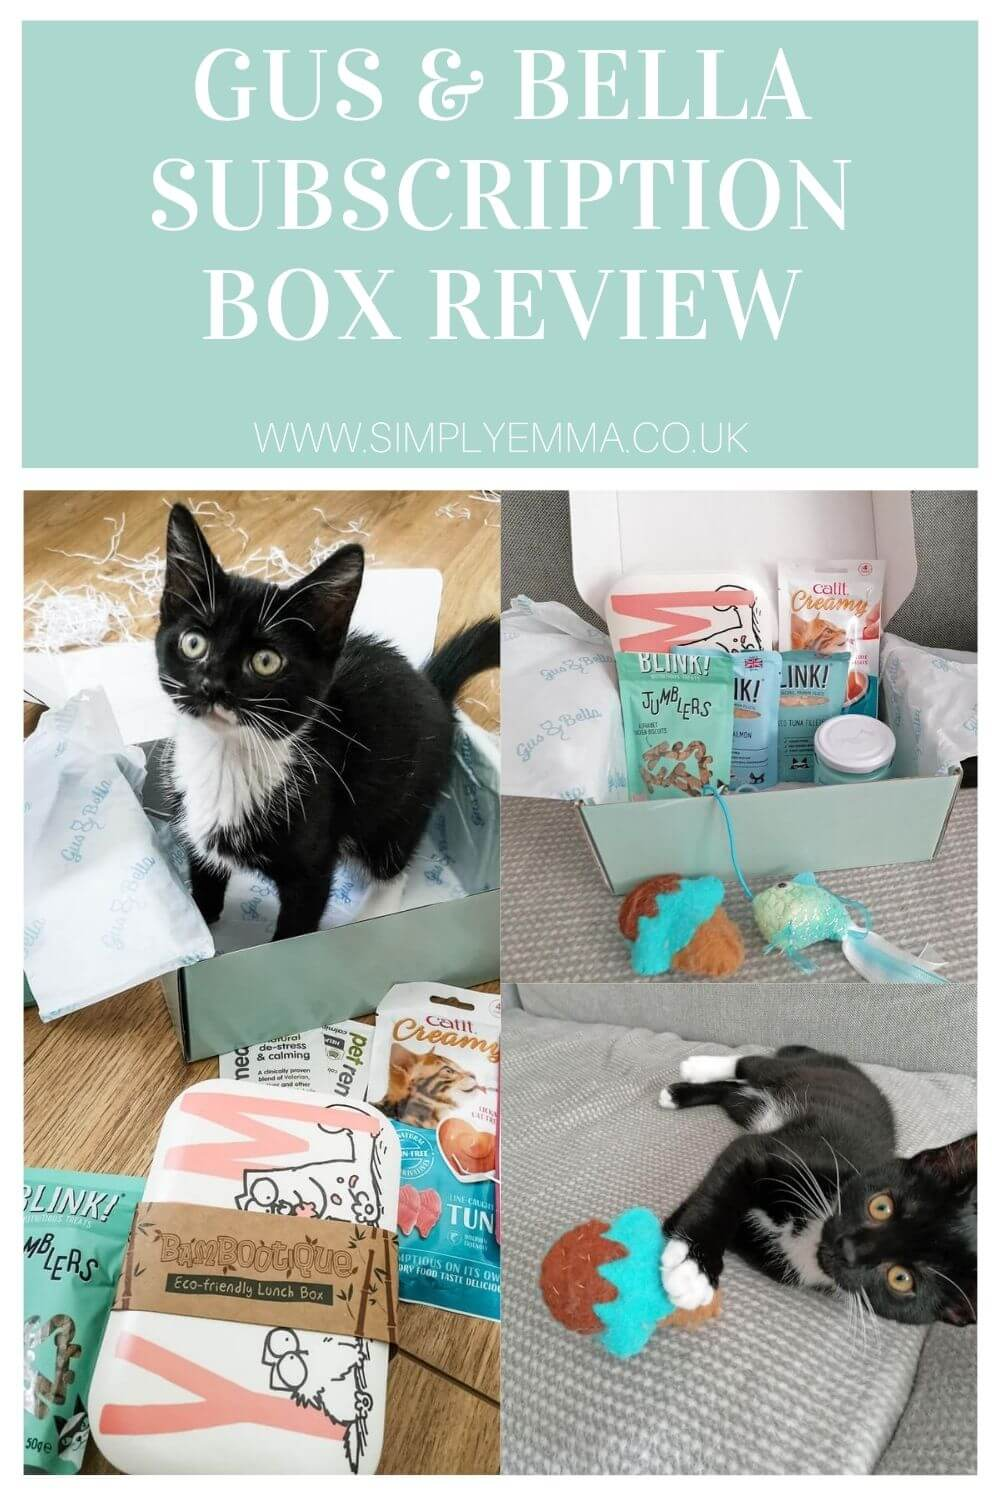 Gus & Bella Cat Subscription Box Review